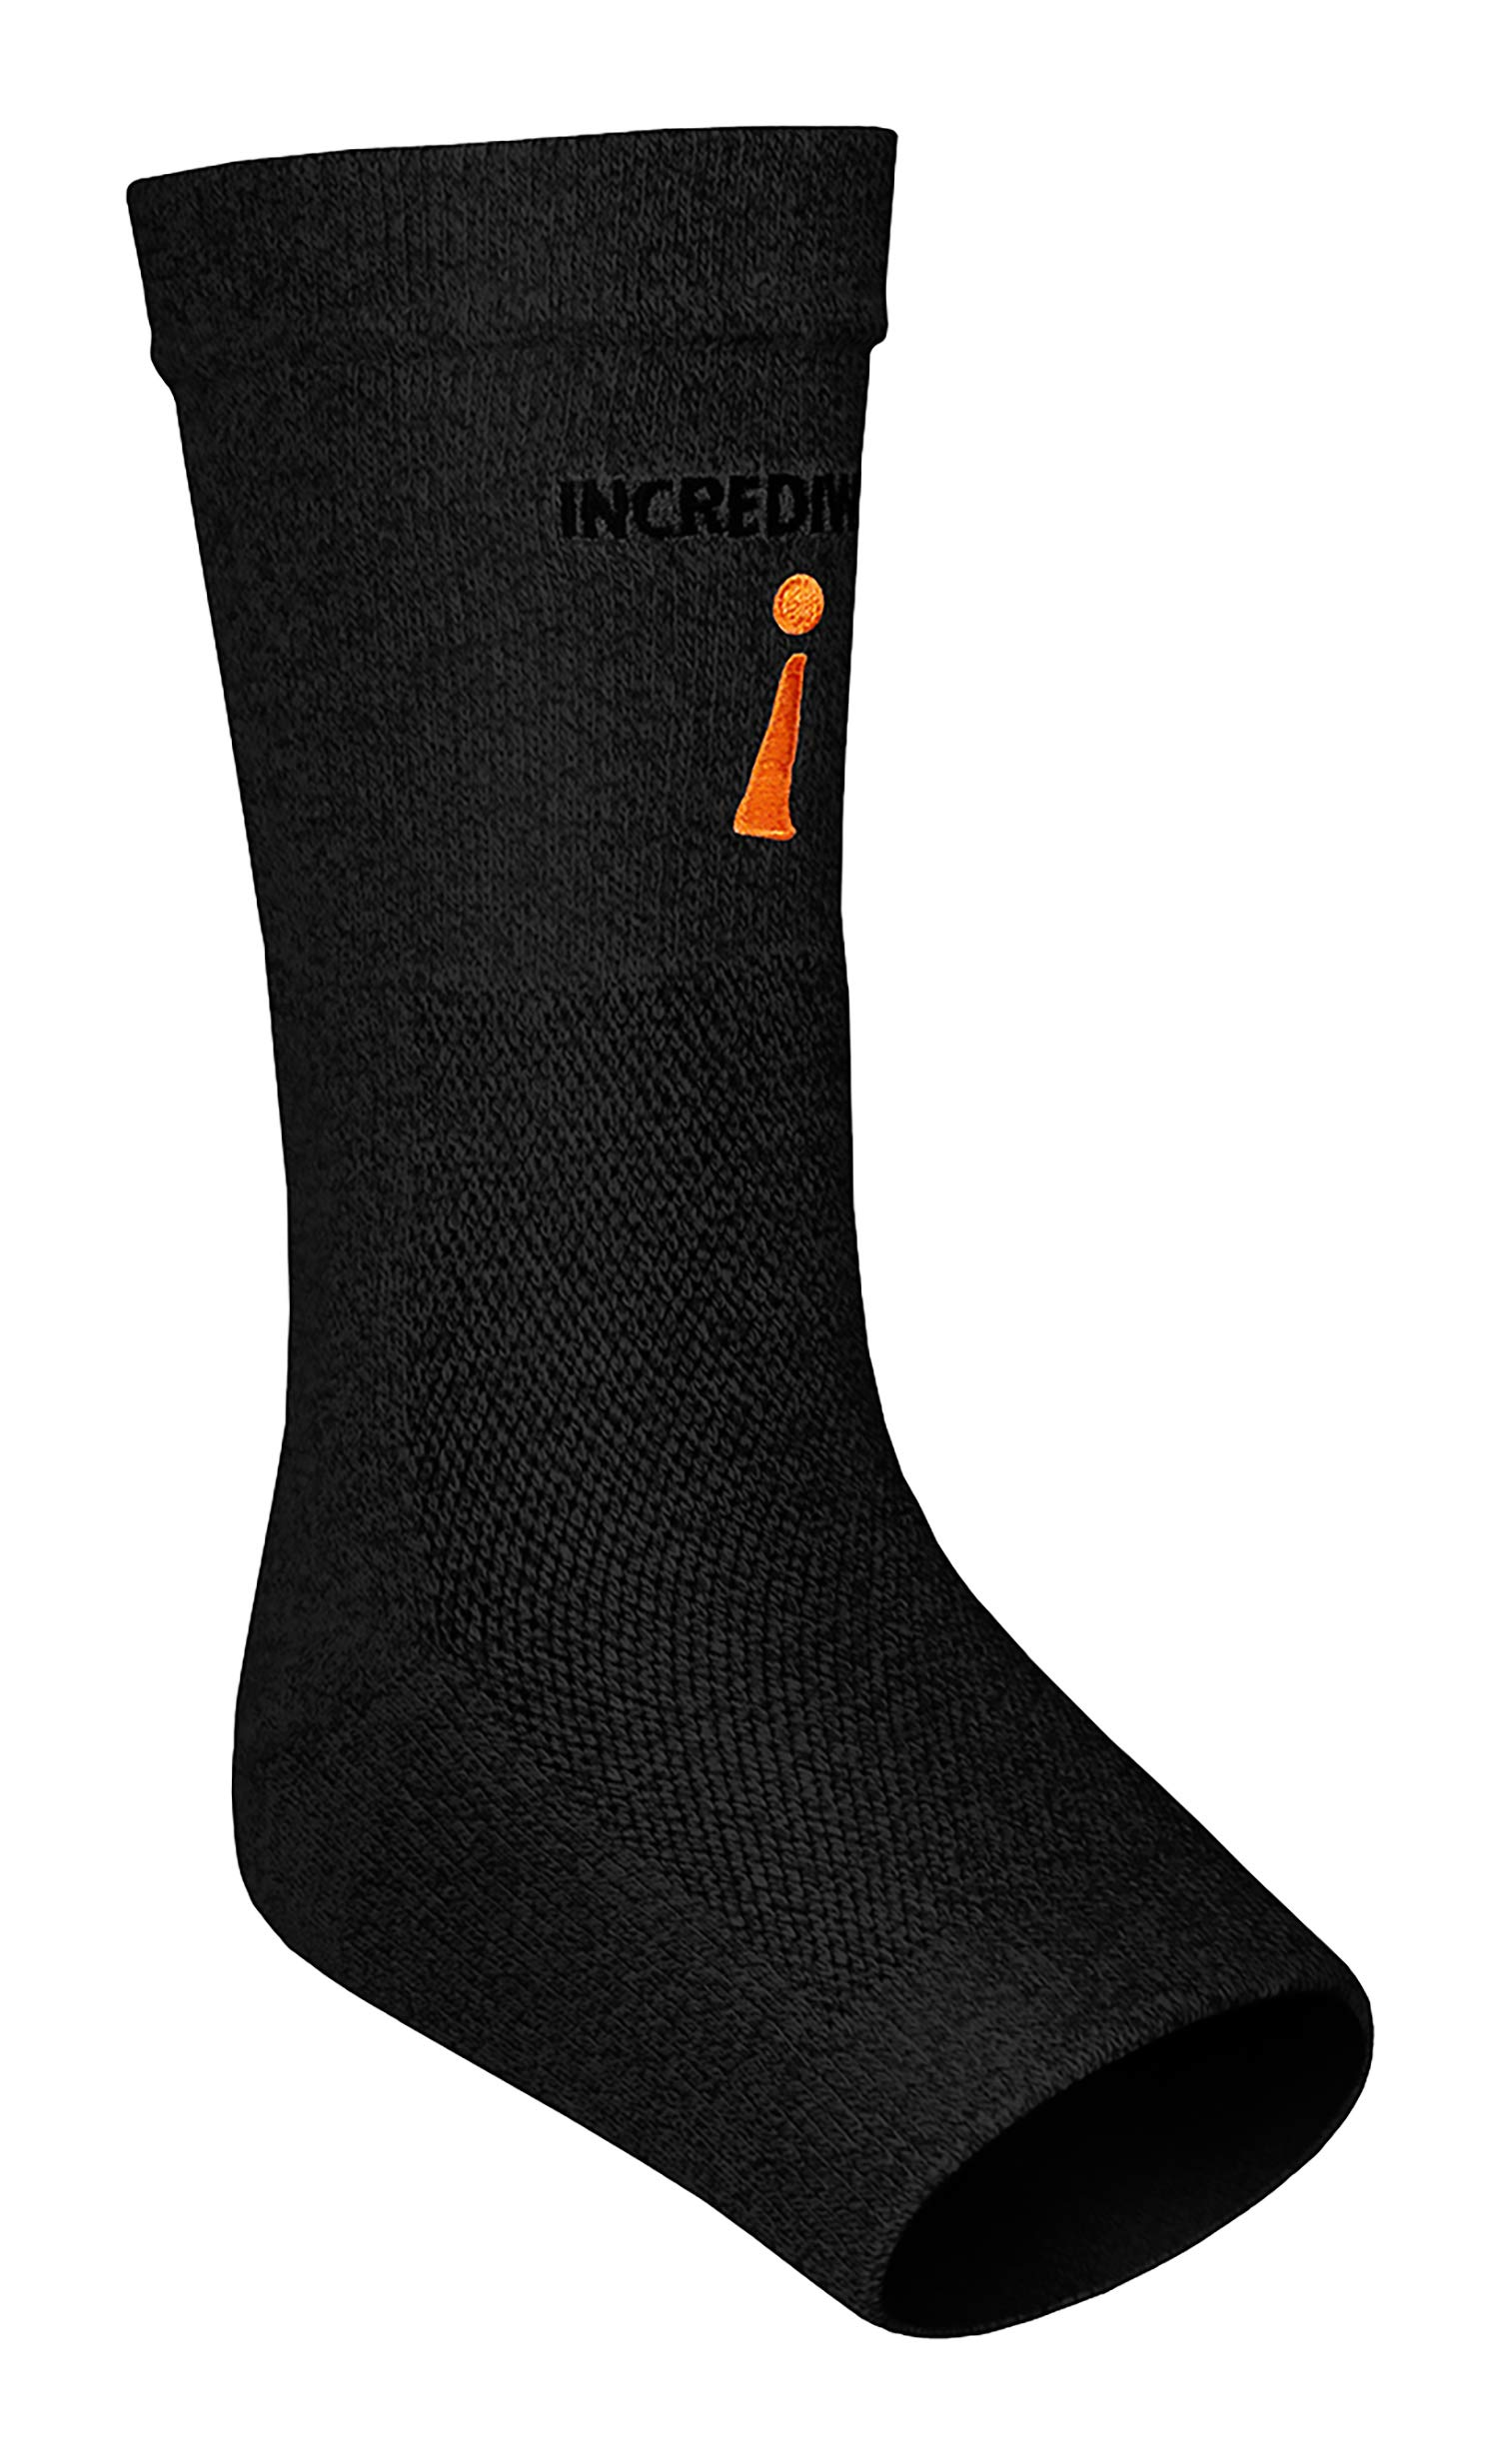 Incrediwear Ankle Sleeve, Black, L by Incrediwear